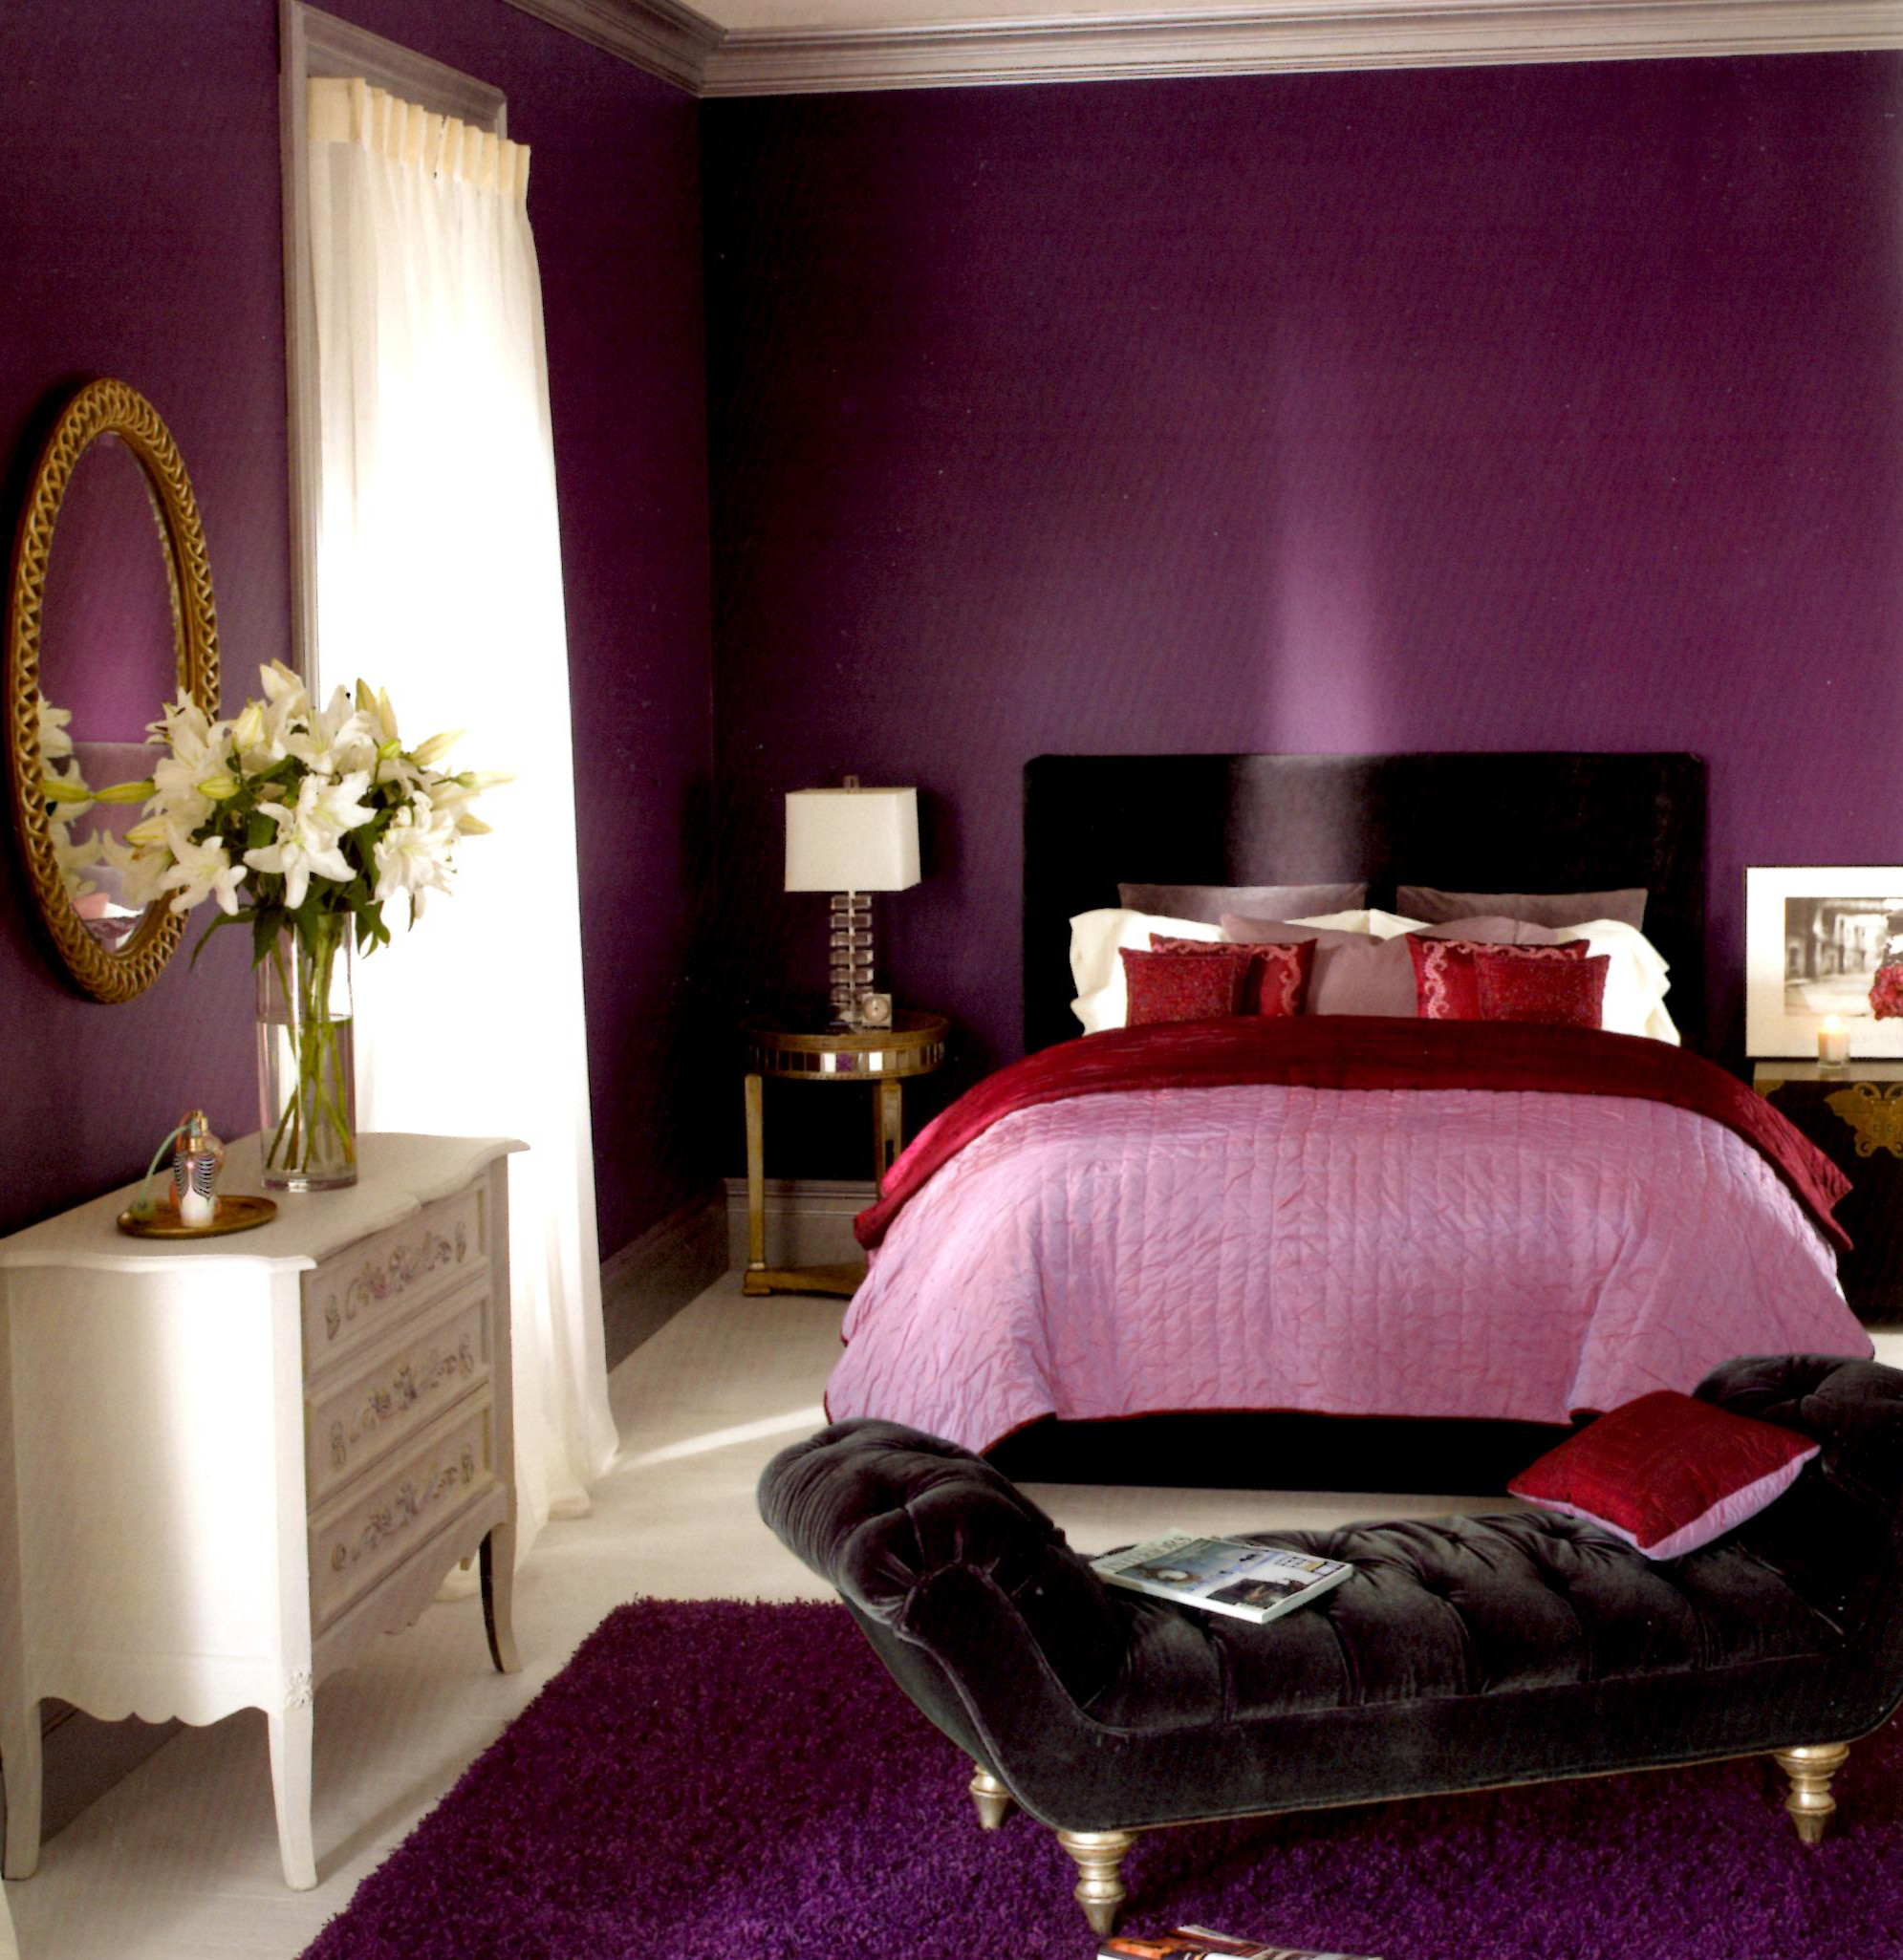 Fascinating Purple Bedroom Walls Of Superbealing Decorating Ideas For Teenage Cheap Acnn Decor